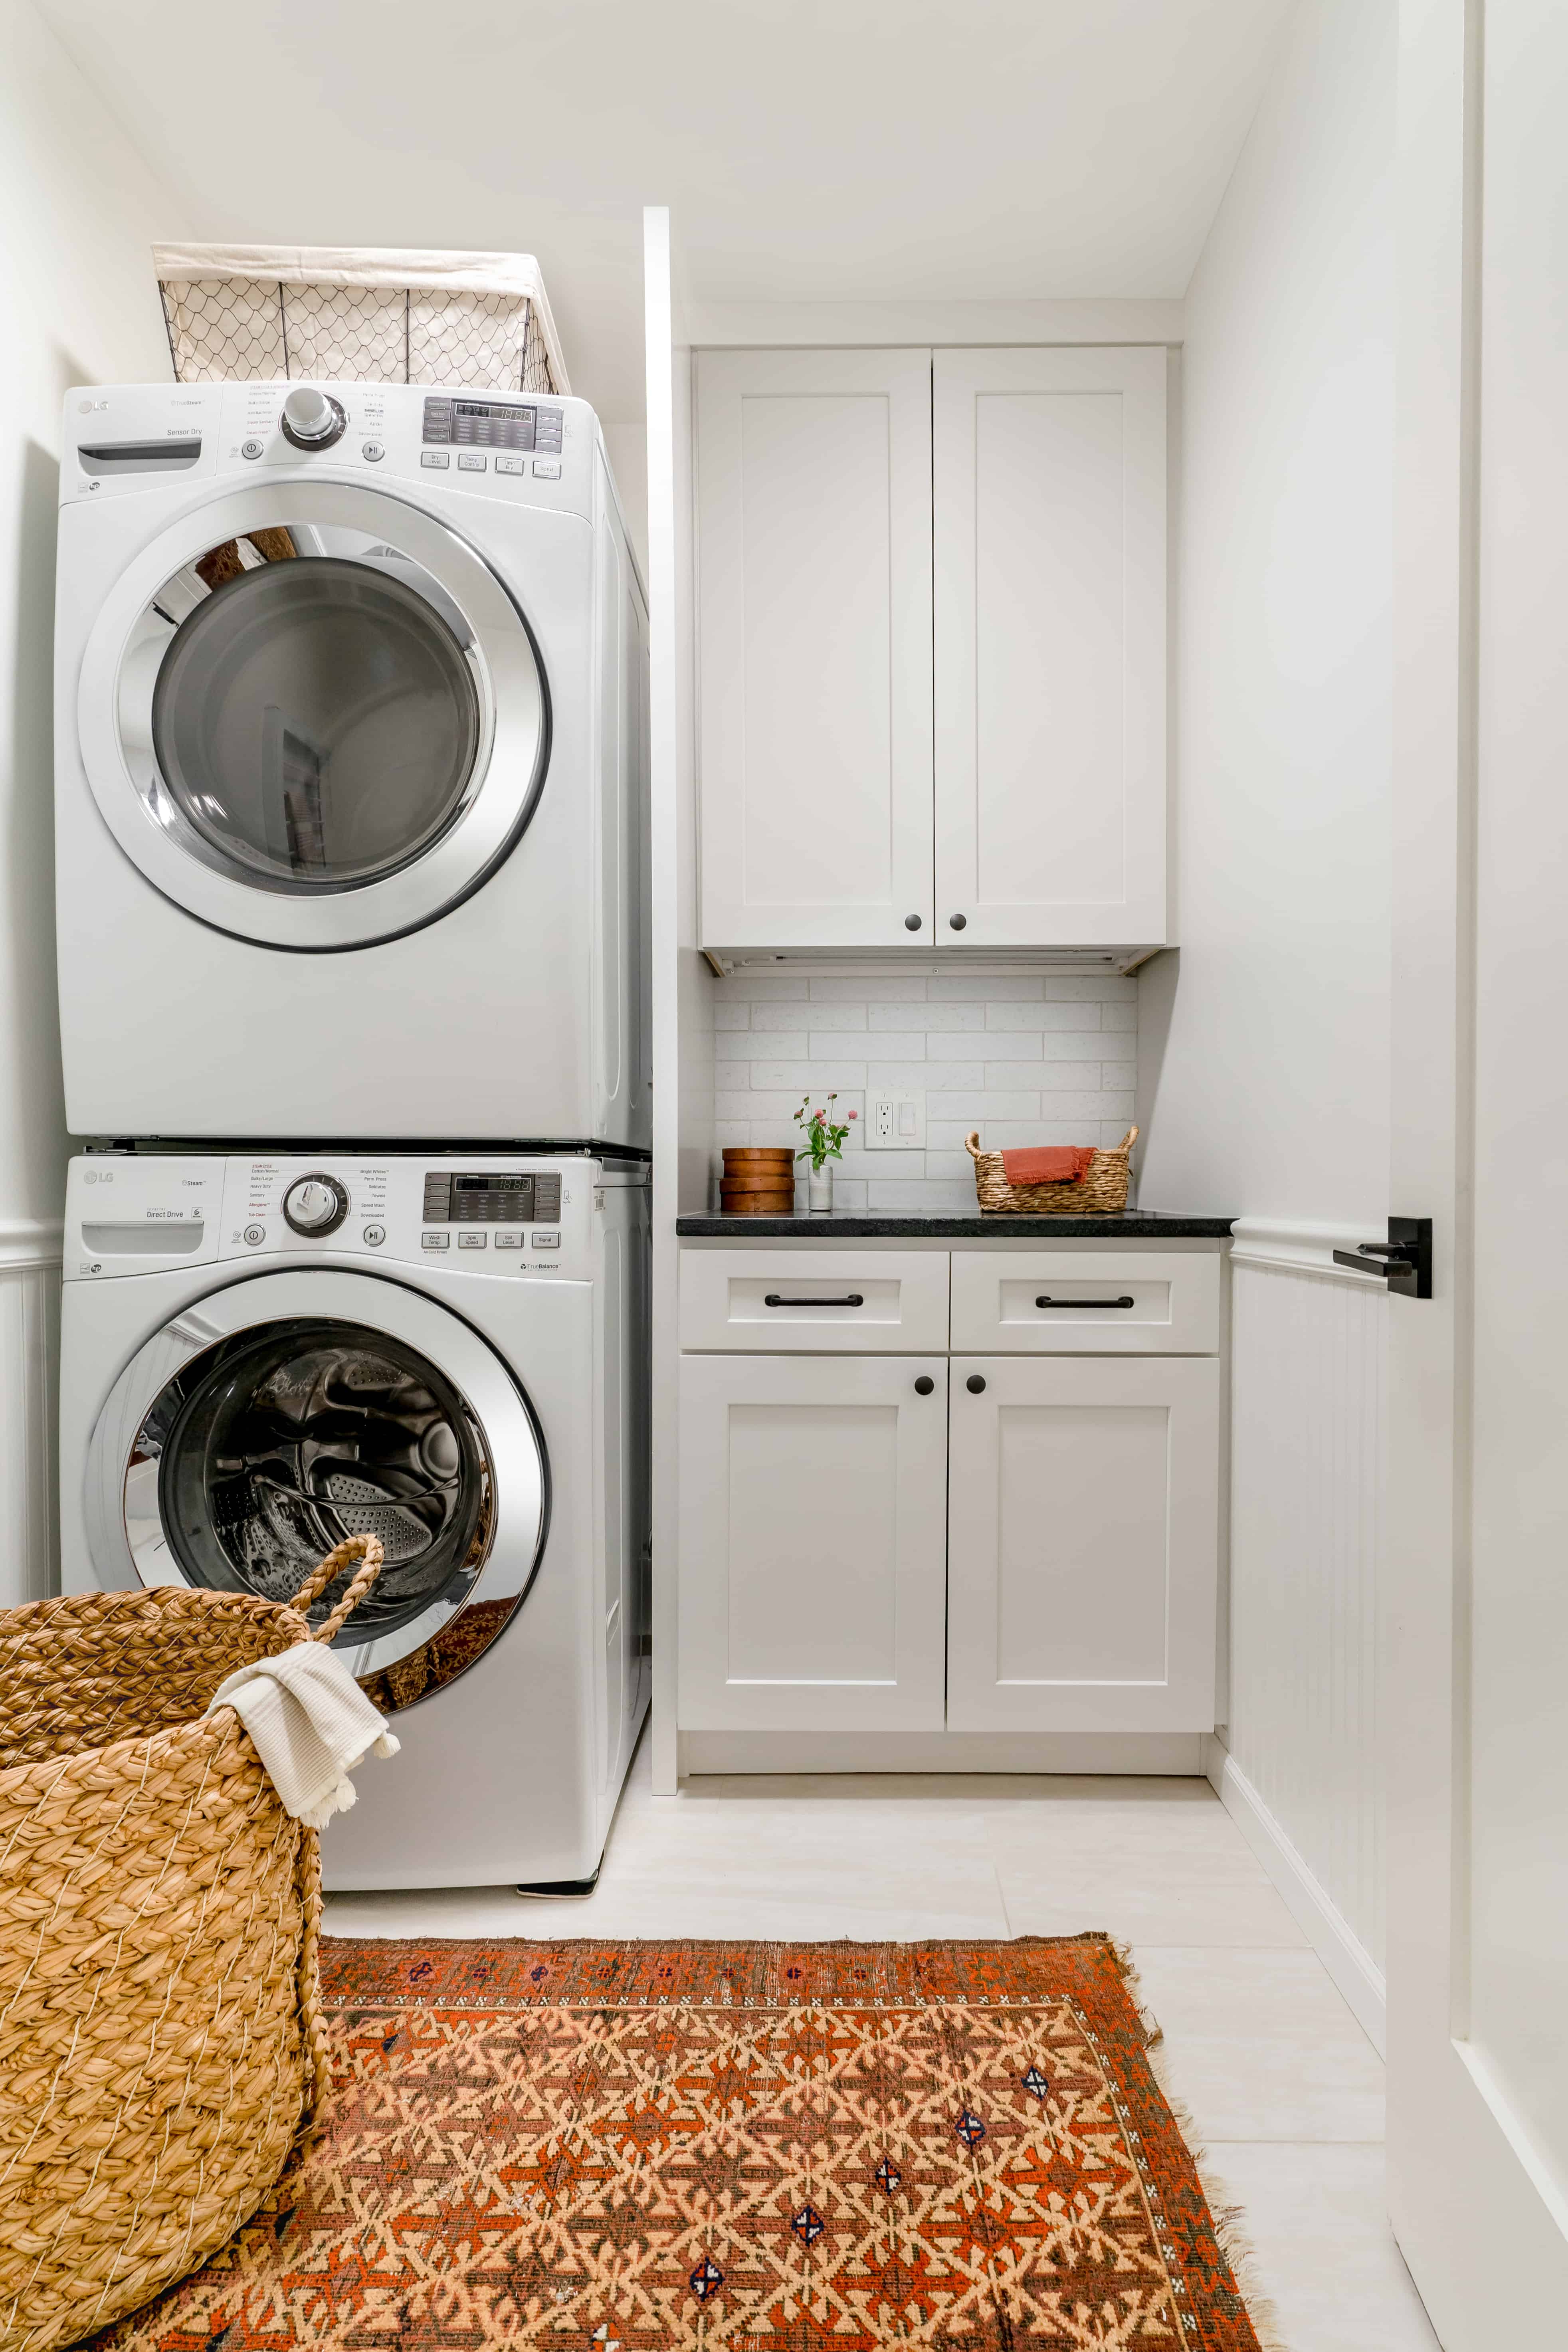 Laundry Room : One Room Challenge - The